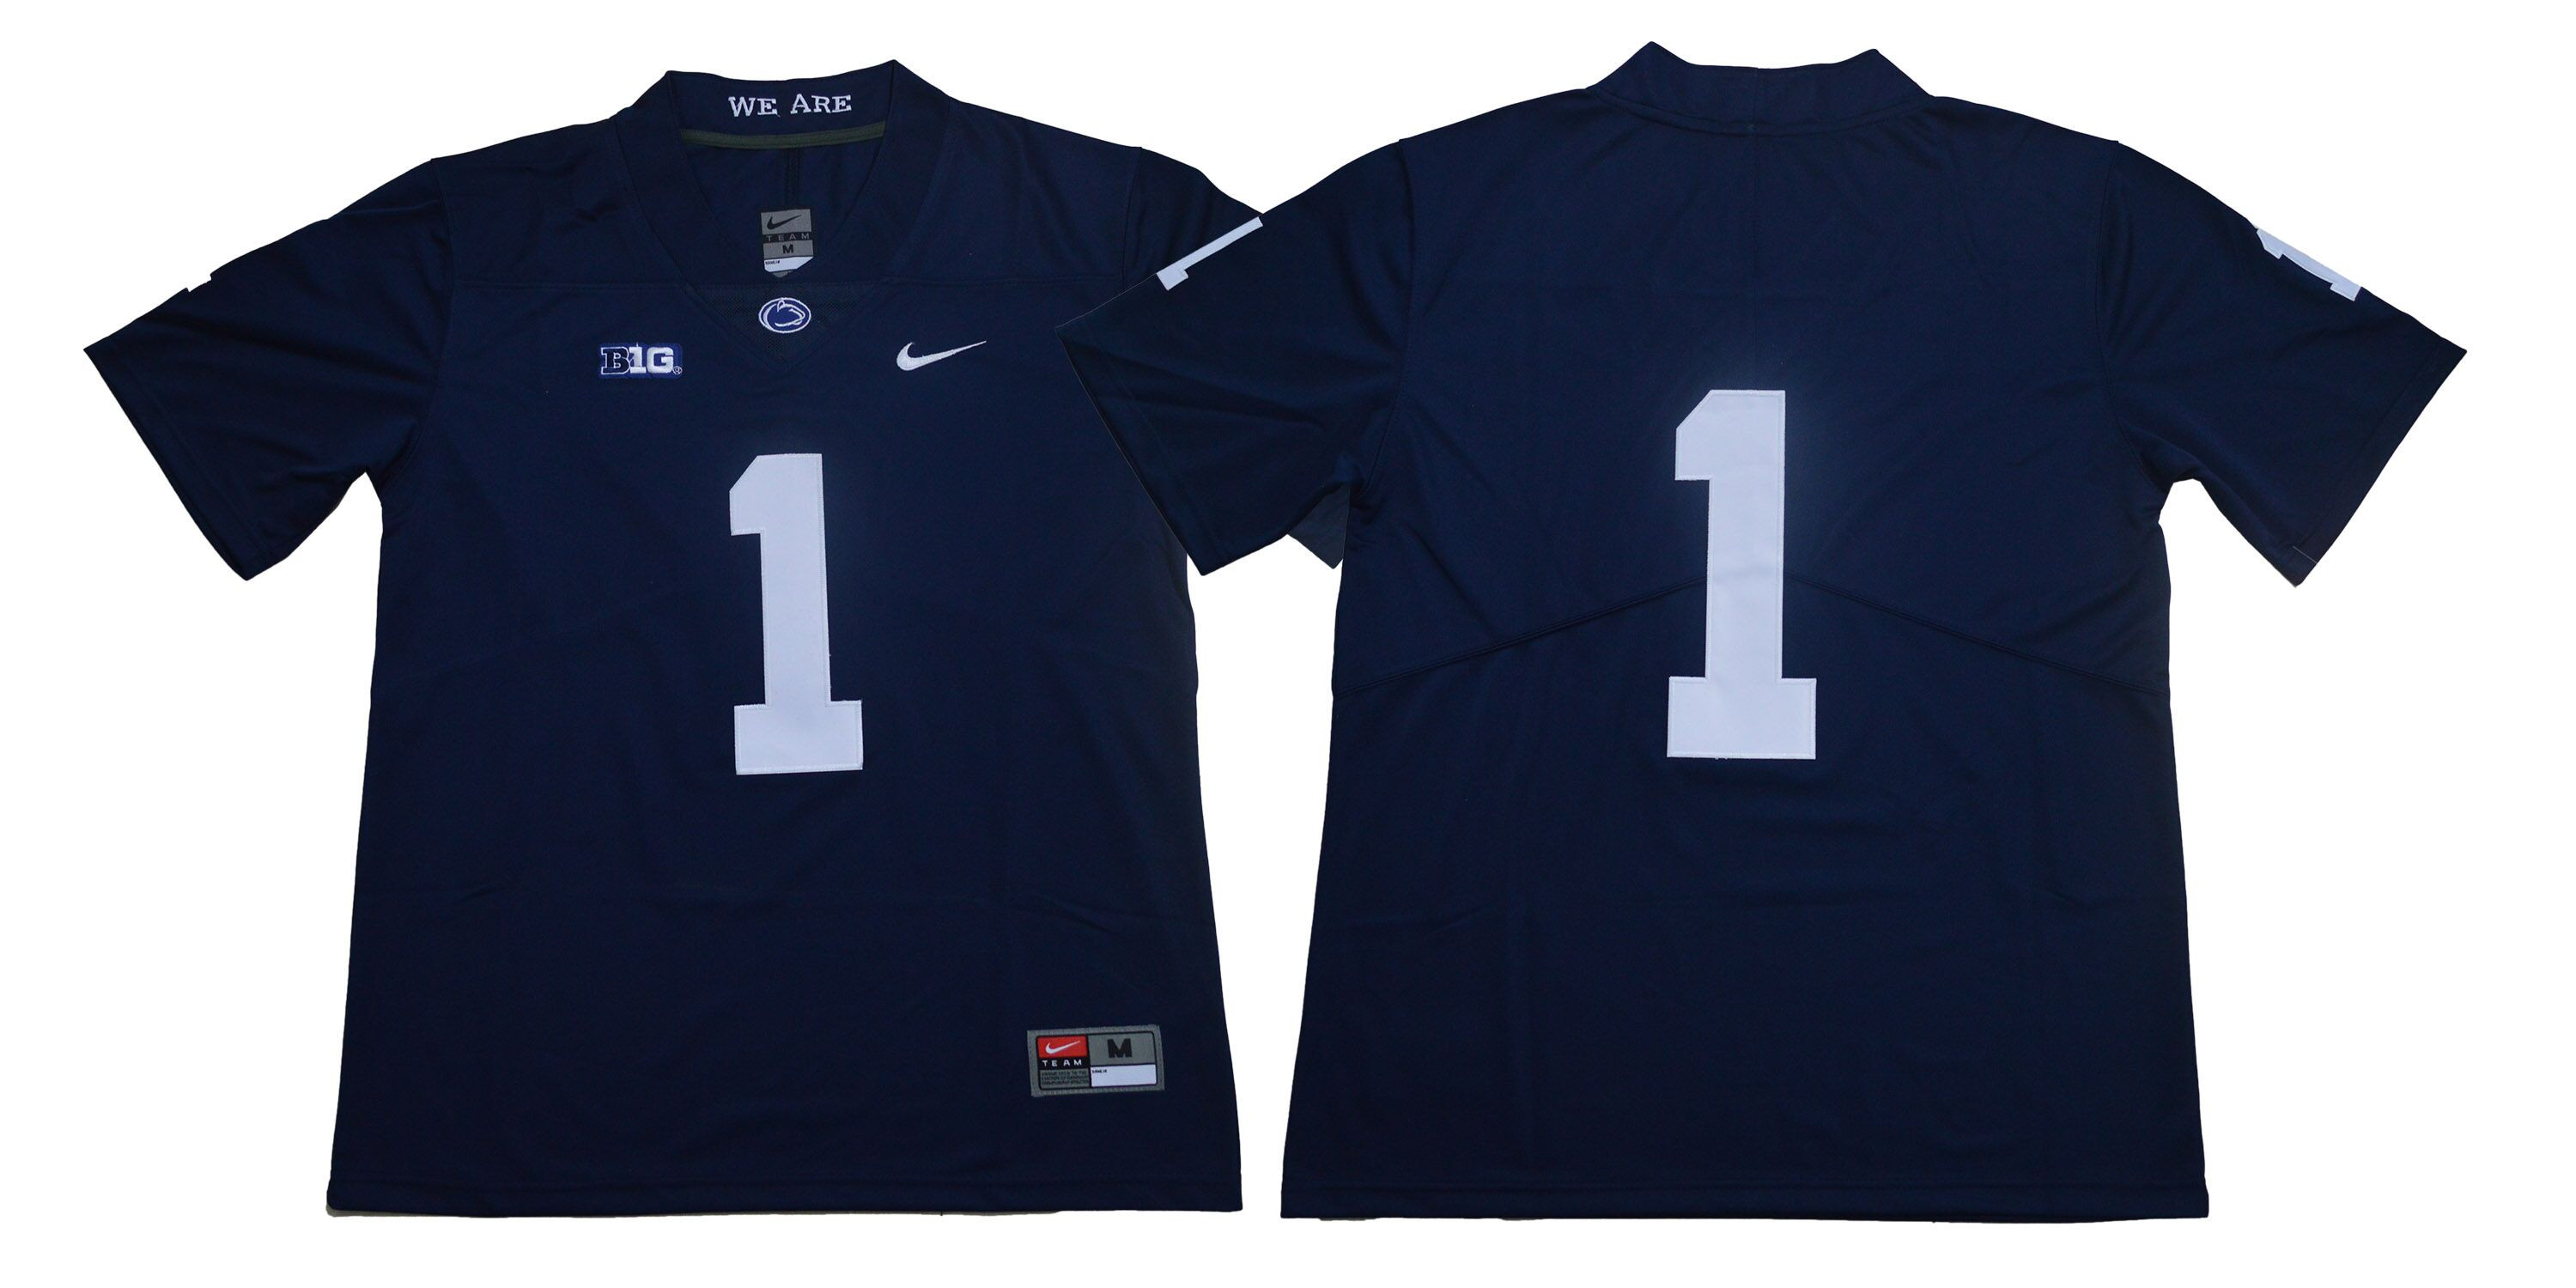 Penn State Nittany Lions #1 Navy Nike College Football Jersey